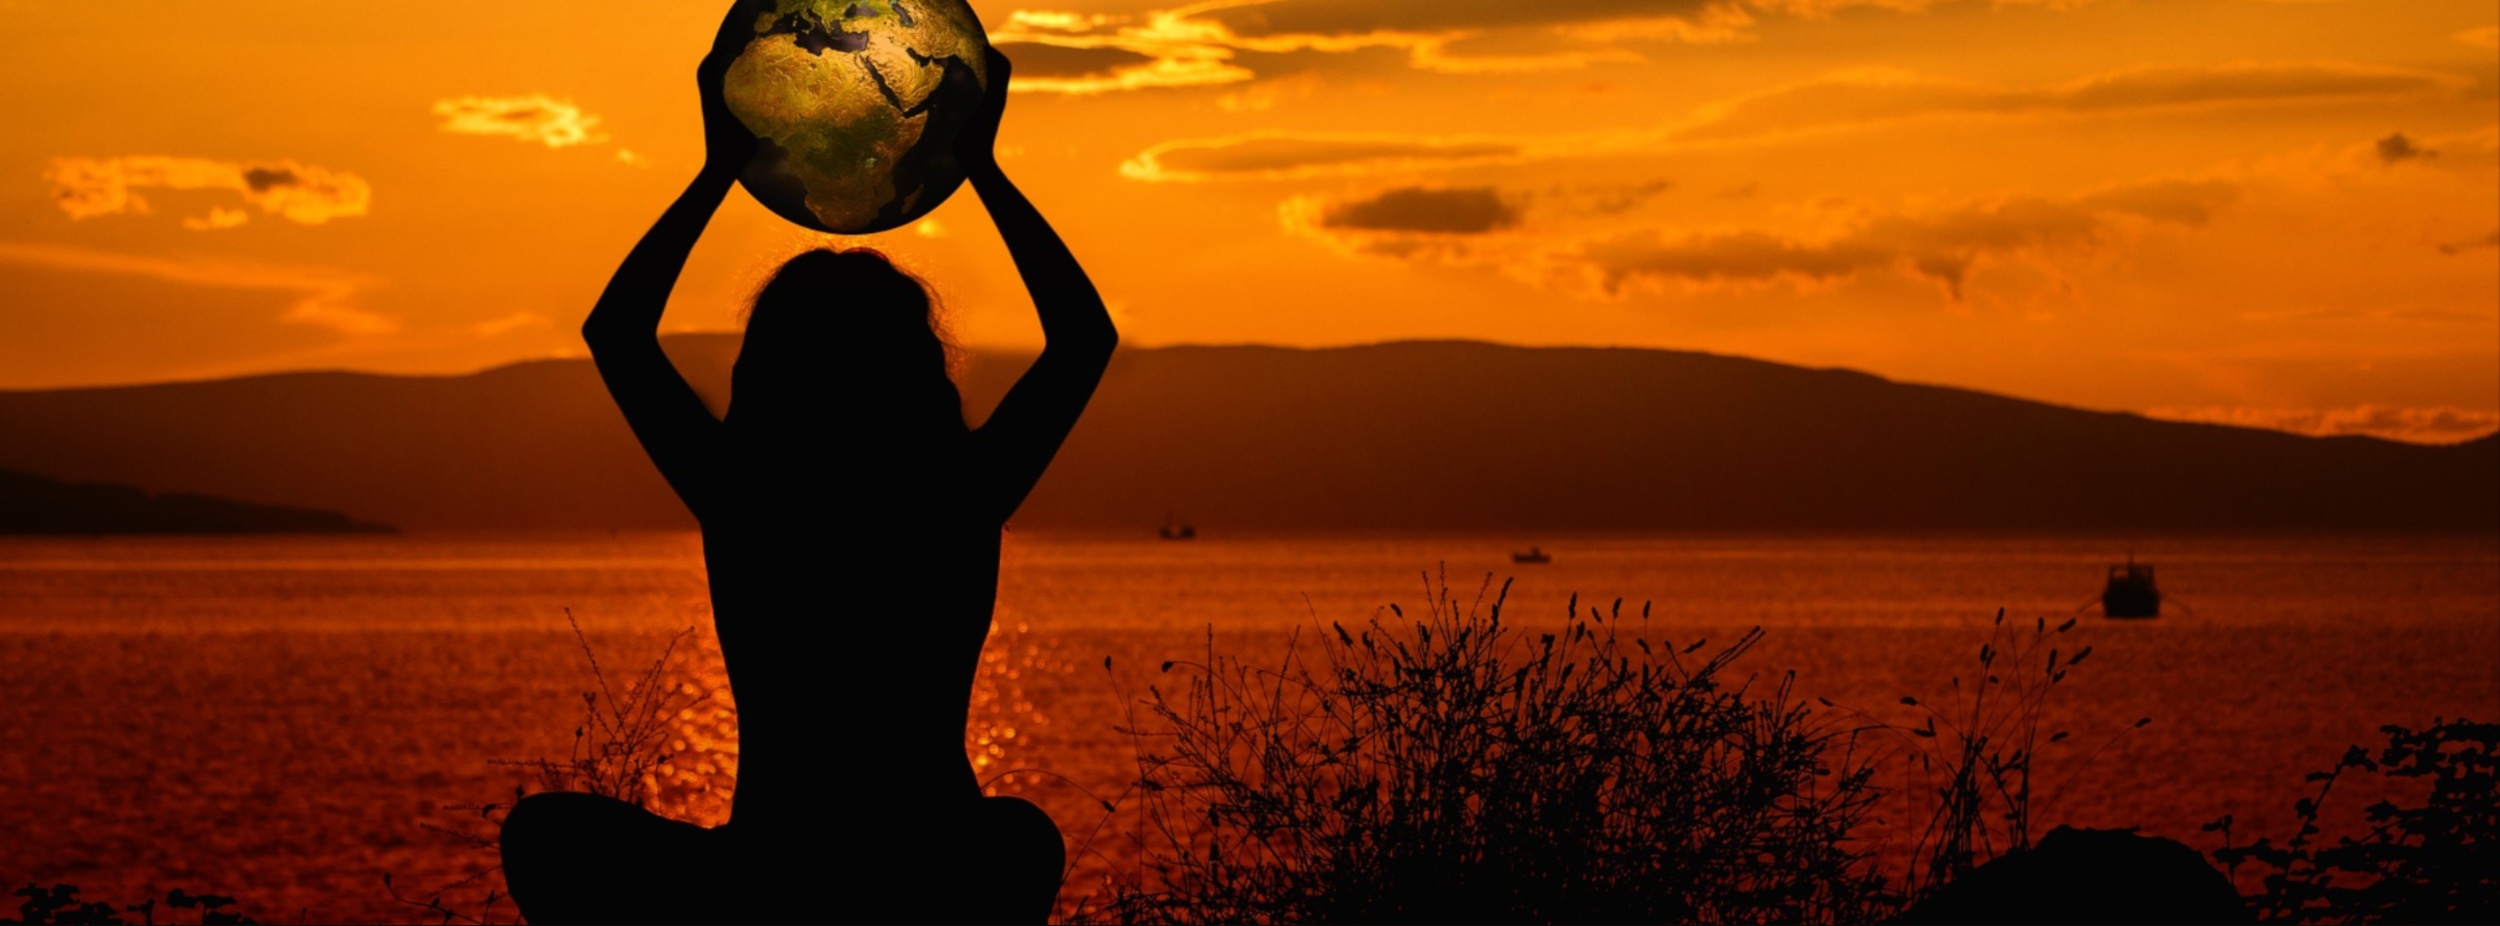 woman sitting holding globe to sky at sunset.png